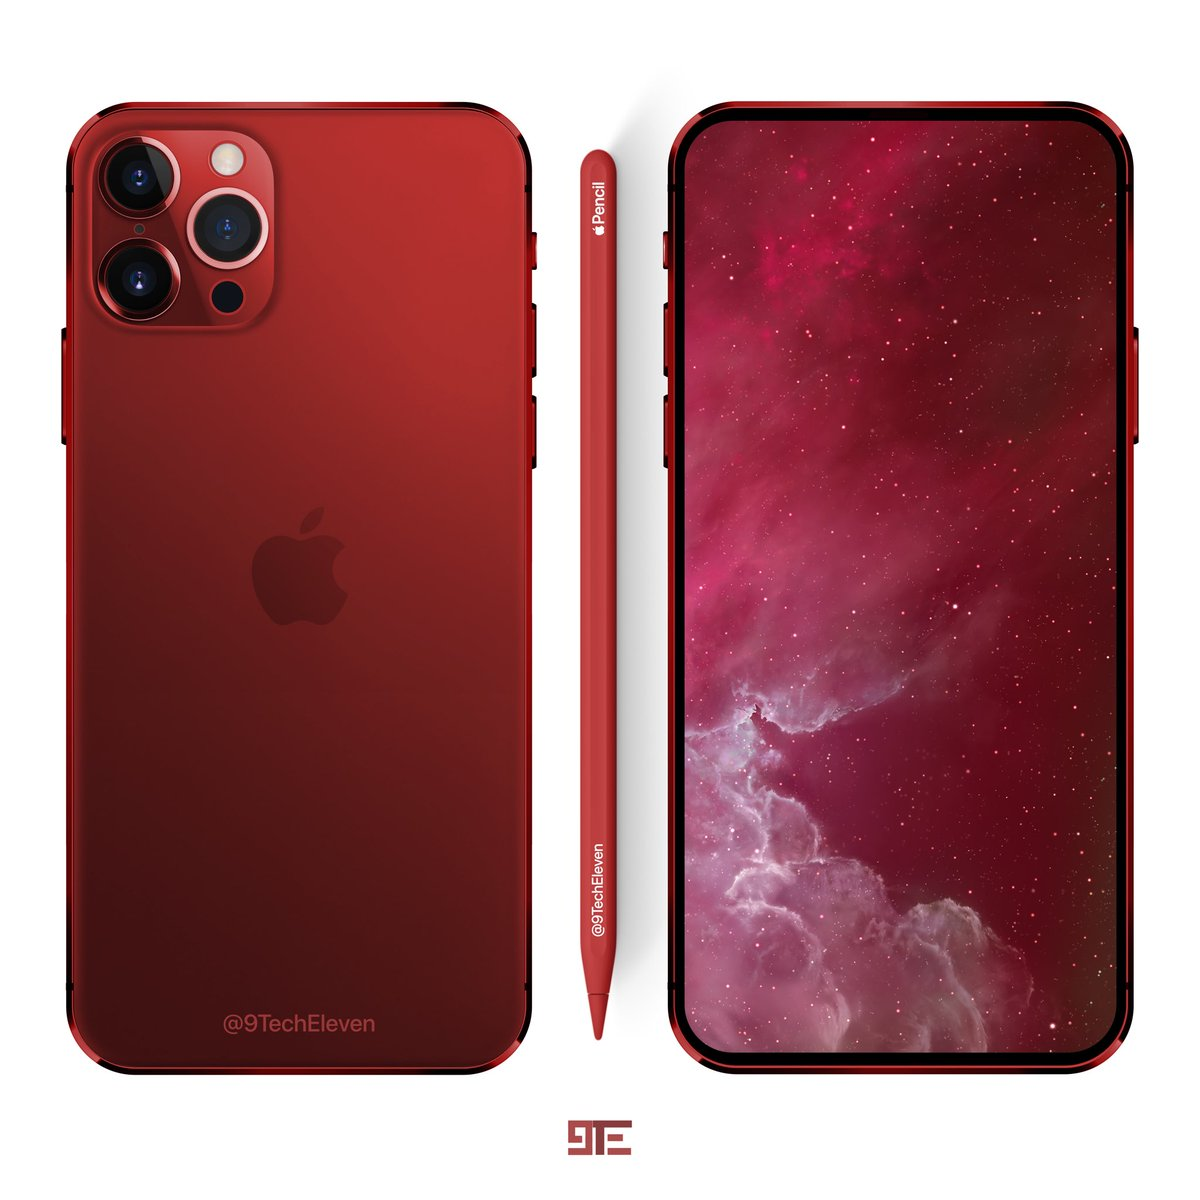 9techeleven On Twitter Iphone 2020 Red Concept Iphone 5 Modded Wallpaper By 9techeleven Download This And Many More On Our New Telegram Channel Https T Co 85k56zkgly Iphone Iphone5 Iphone12 Iphone2020 Iphone11promax Iphone11 Iphone11pro